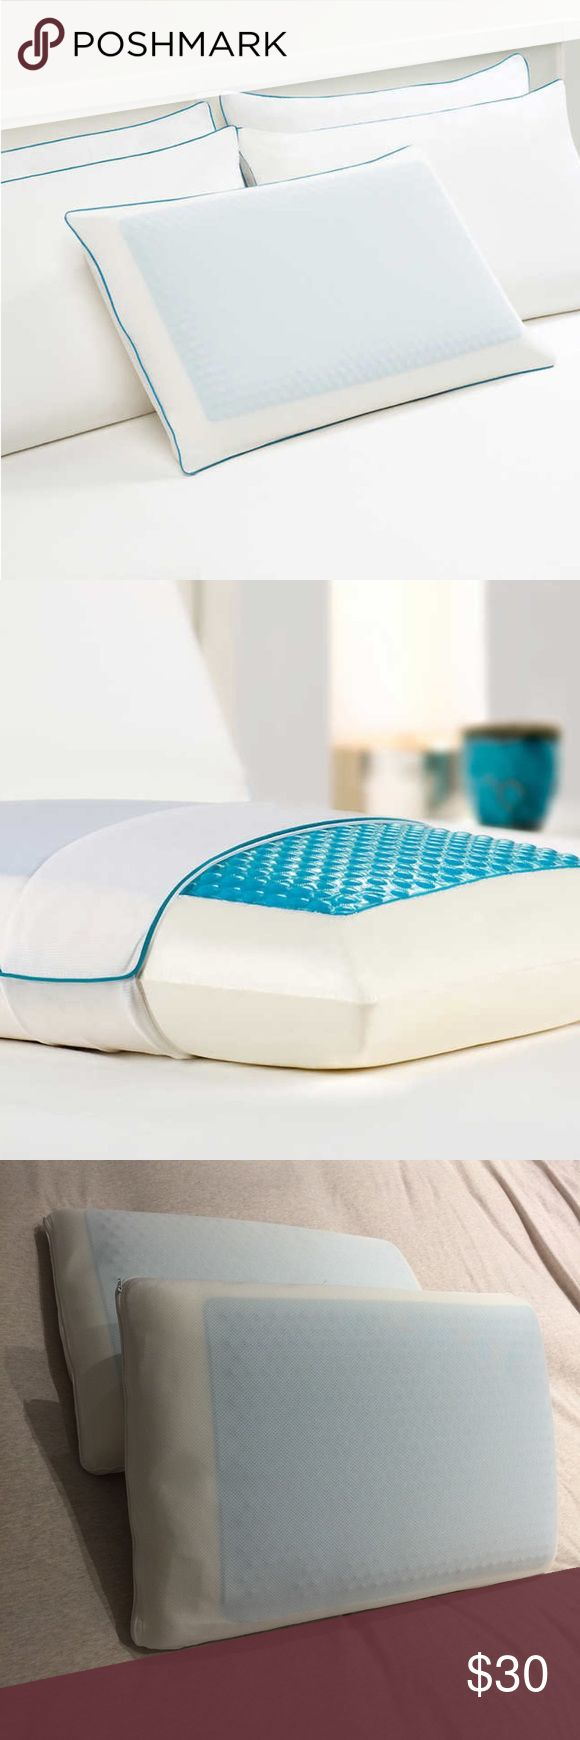 Comfort Revolution Hydraluxe Gel Memory Pillow Didn't have these for even a few months and prefer a more ergonomic pillow for me. But i loved these, slightly firm and has cooking gel on top side! Other